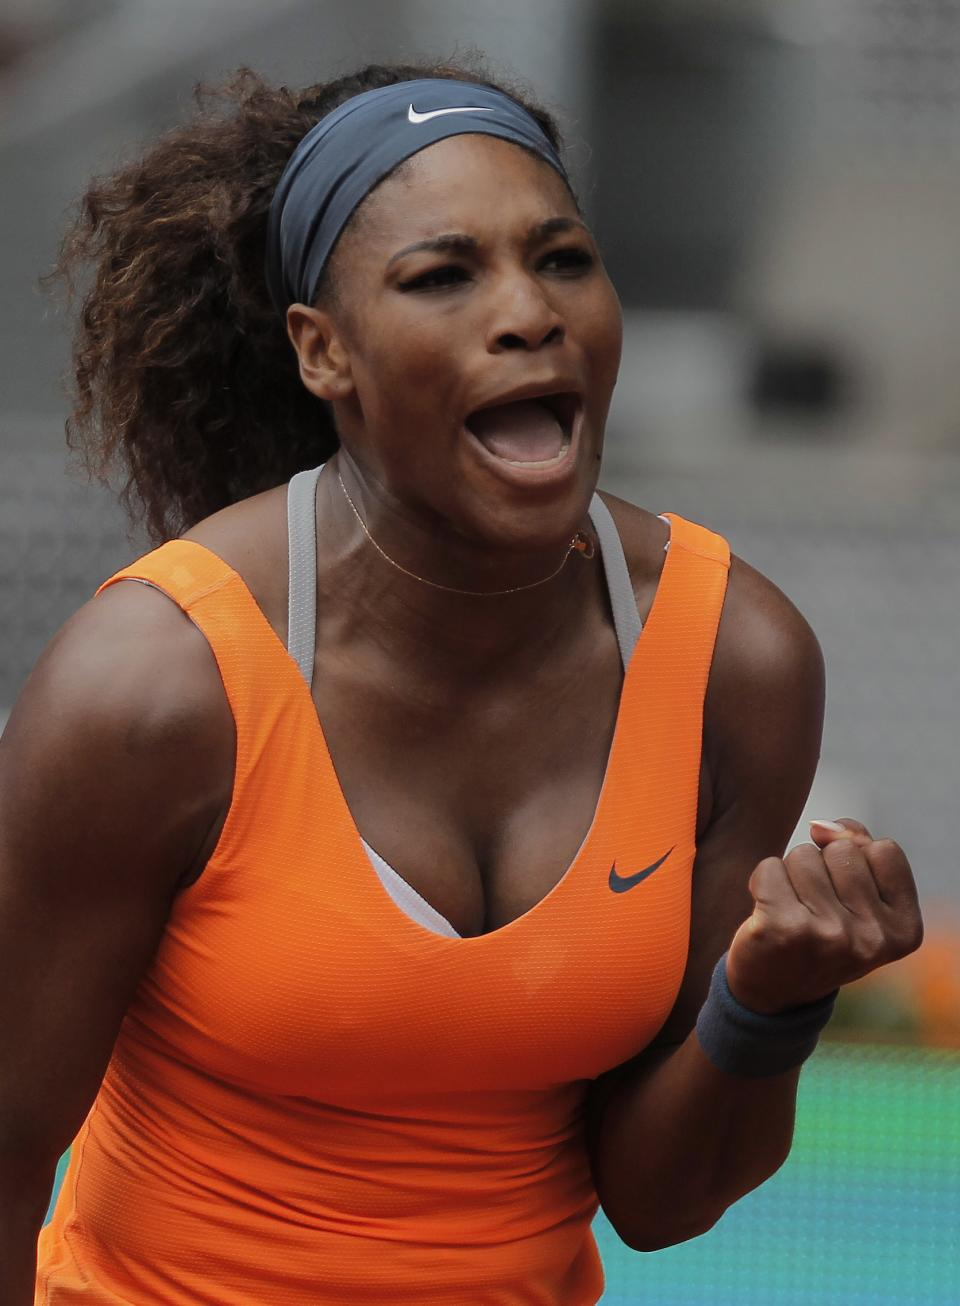 Serena Williams from U.S. celebrates during the match against Lourdes Dominguez Lino from Spain at the Madrid Open tennis tournament, in Madrid, Tuesday, May 7, 2013. (AP Photo/Andres Kudacki)